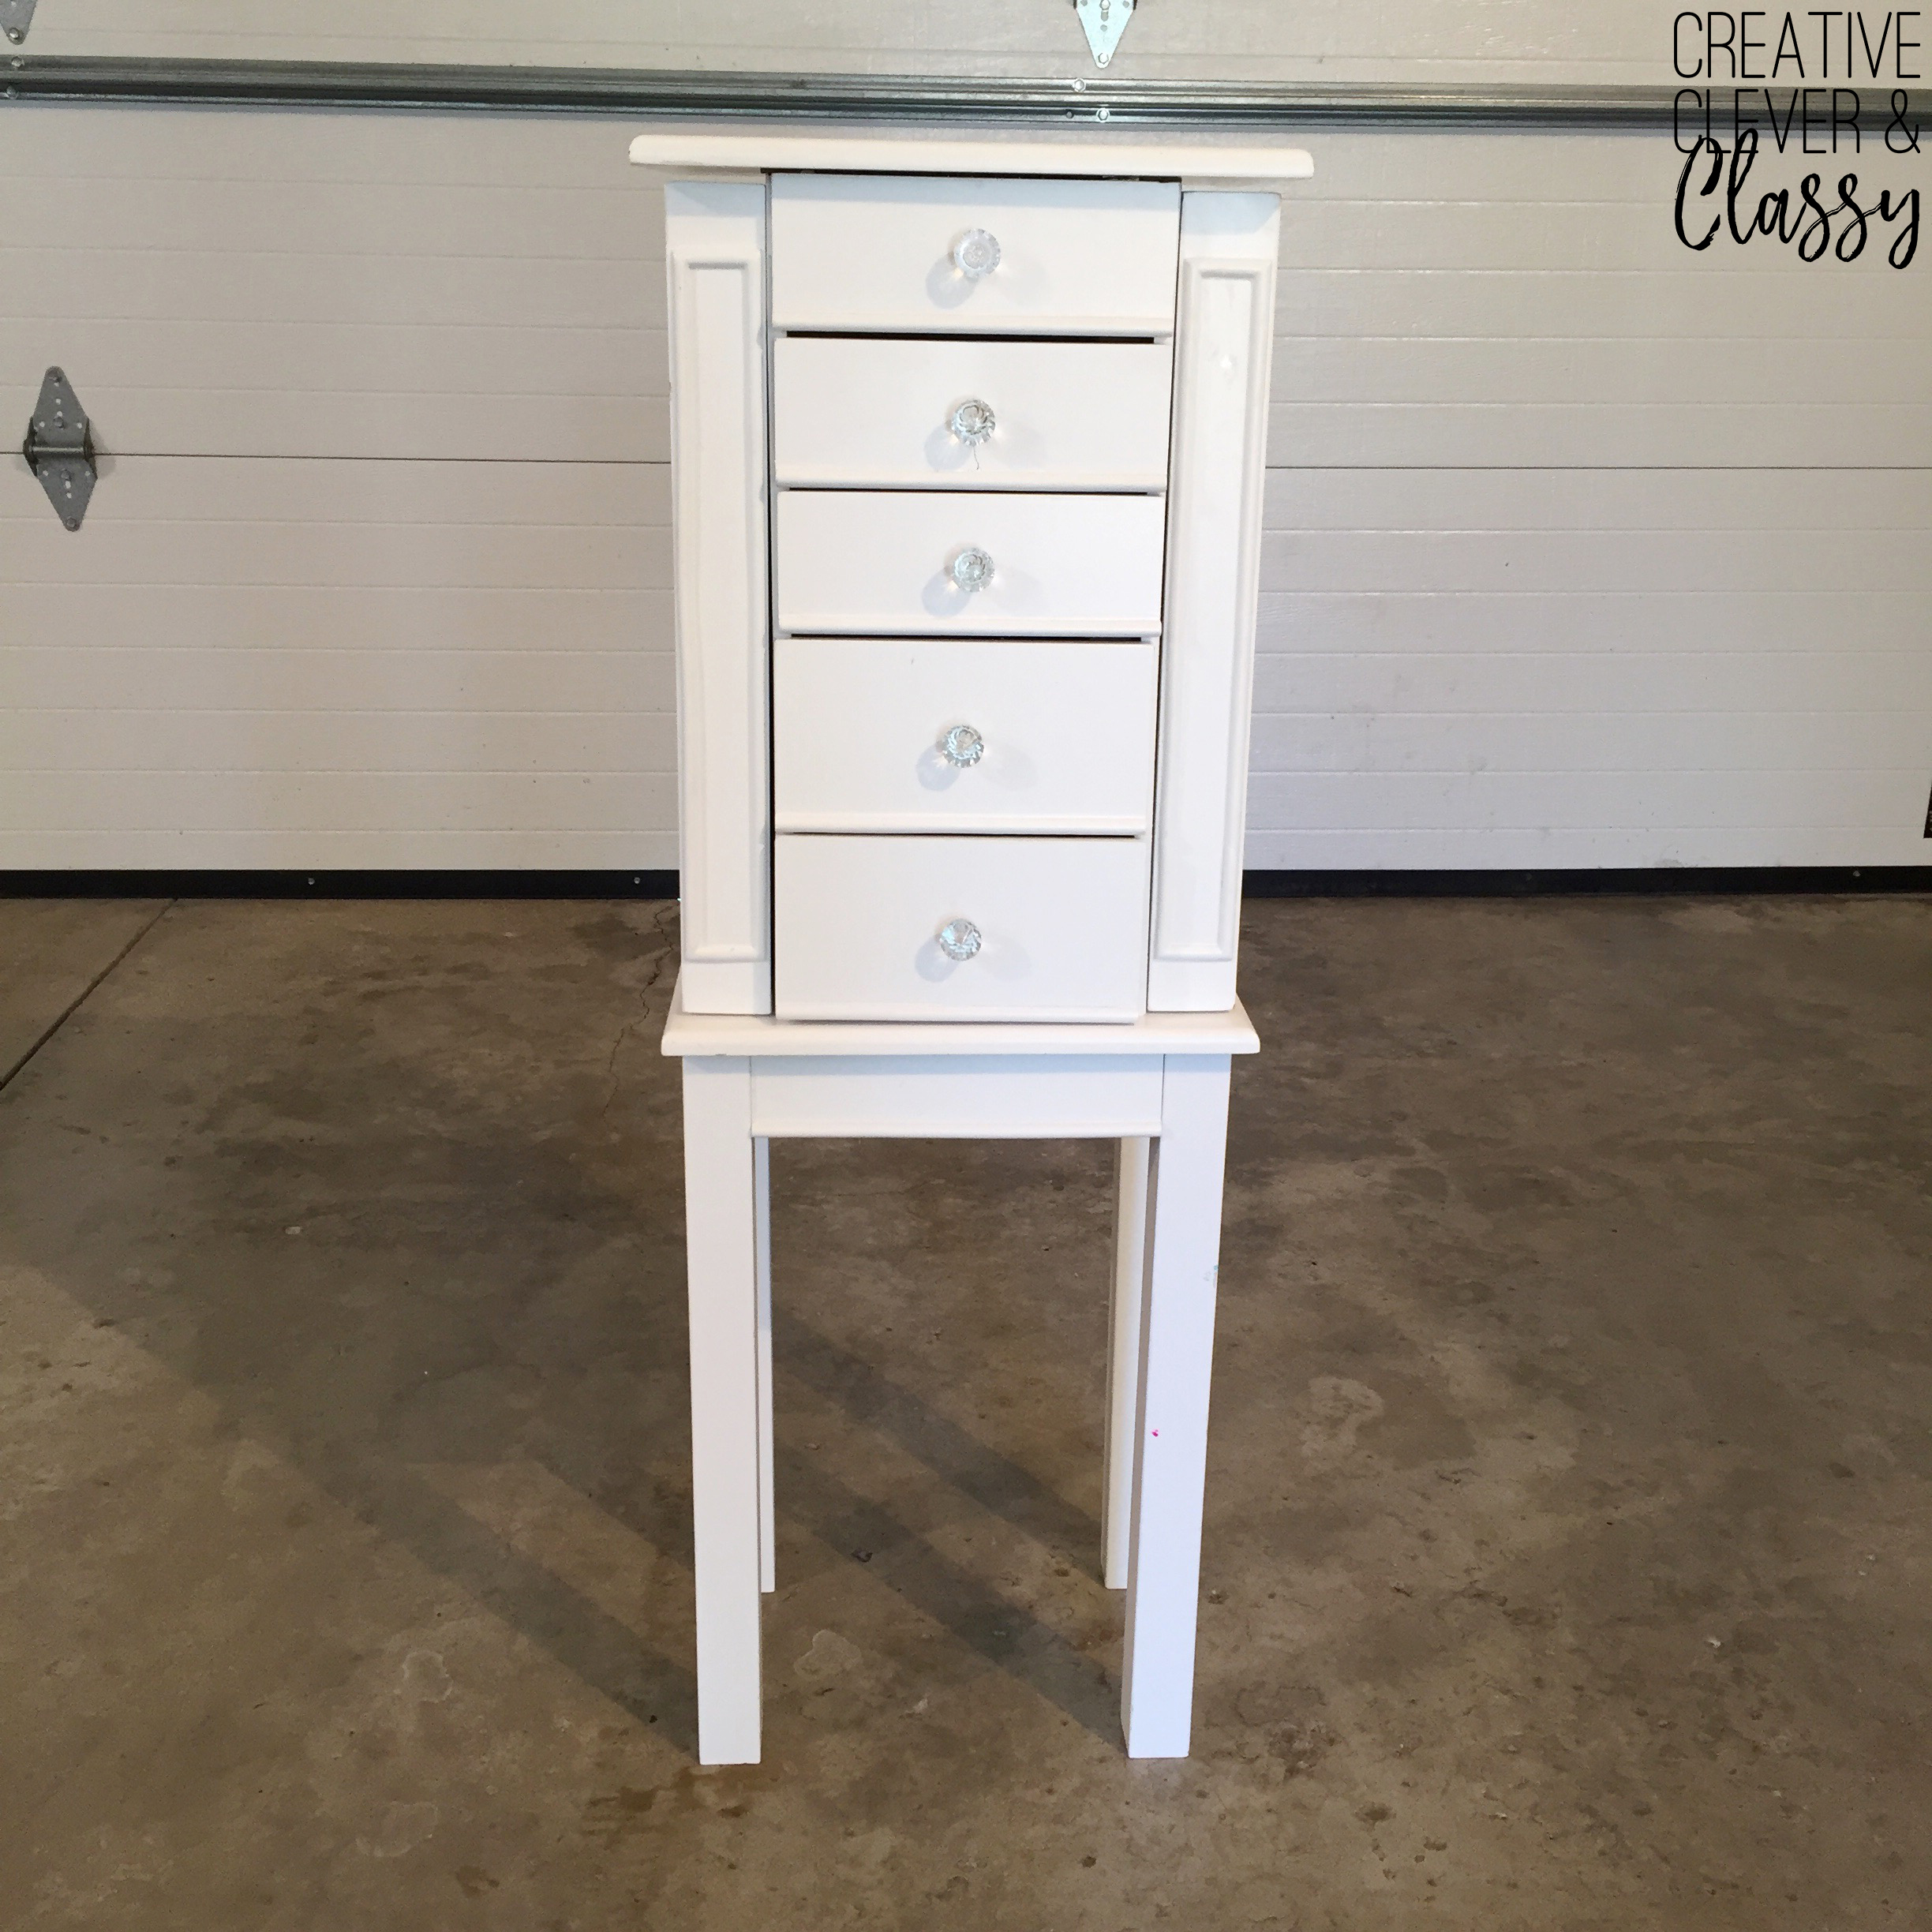 How To Paint Furniture: DIY Jewelry Armoire